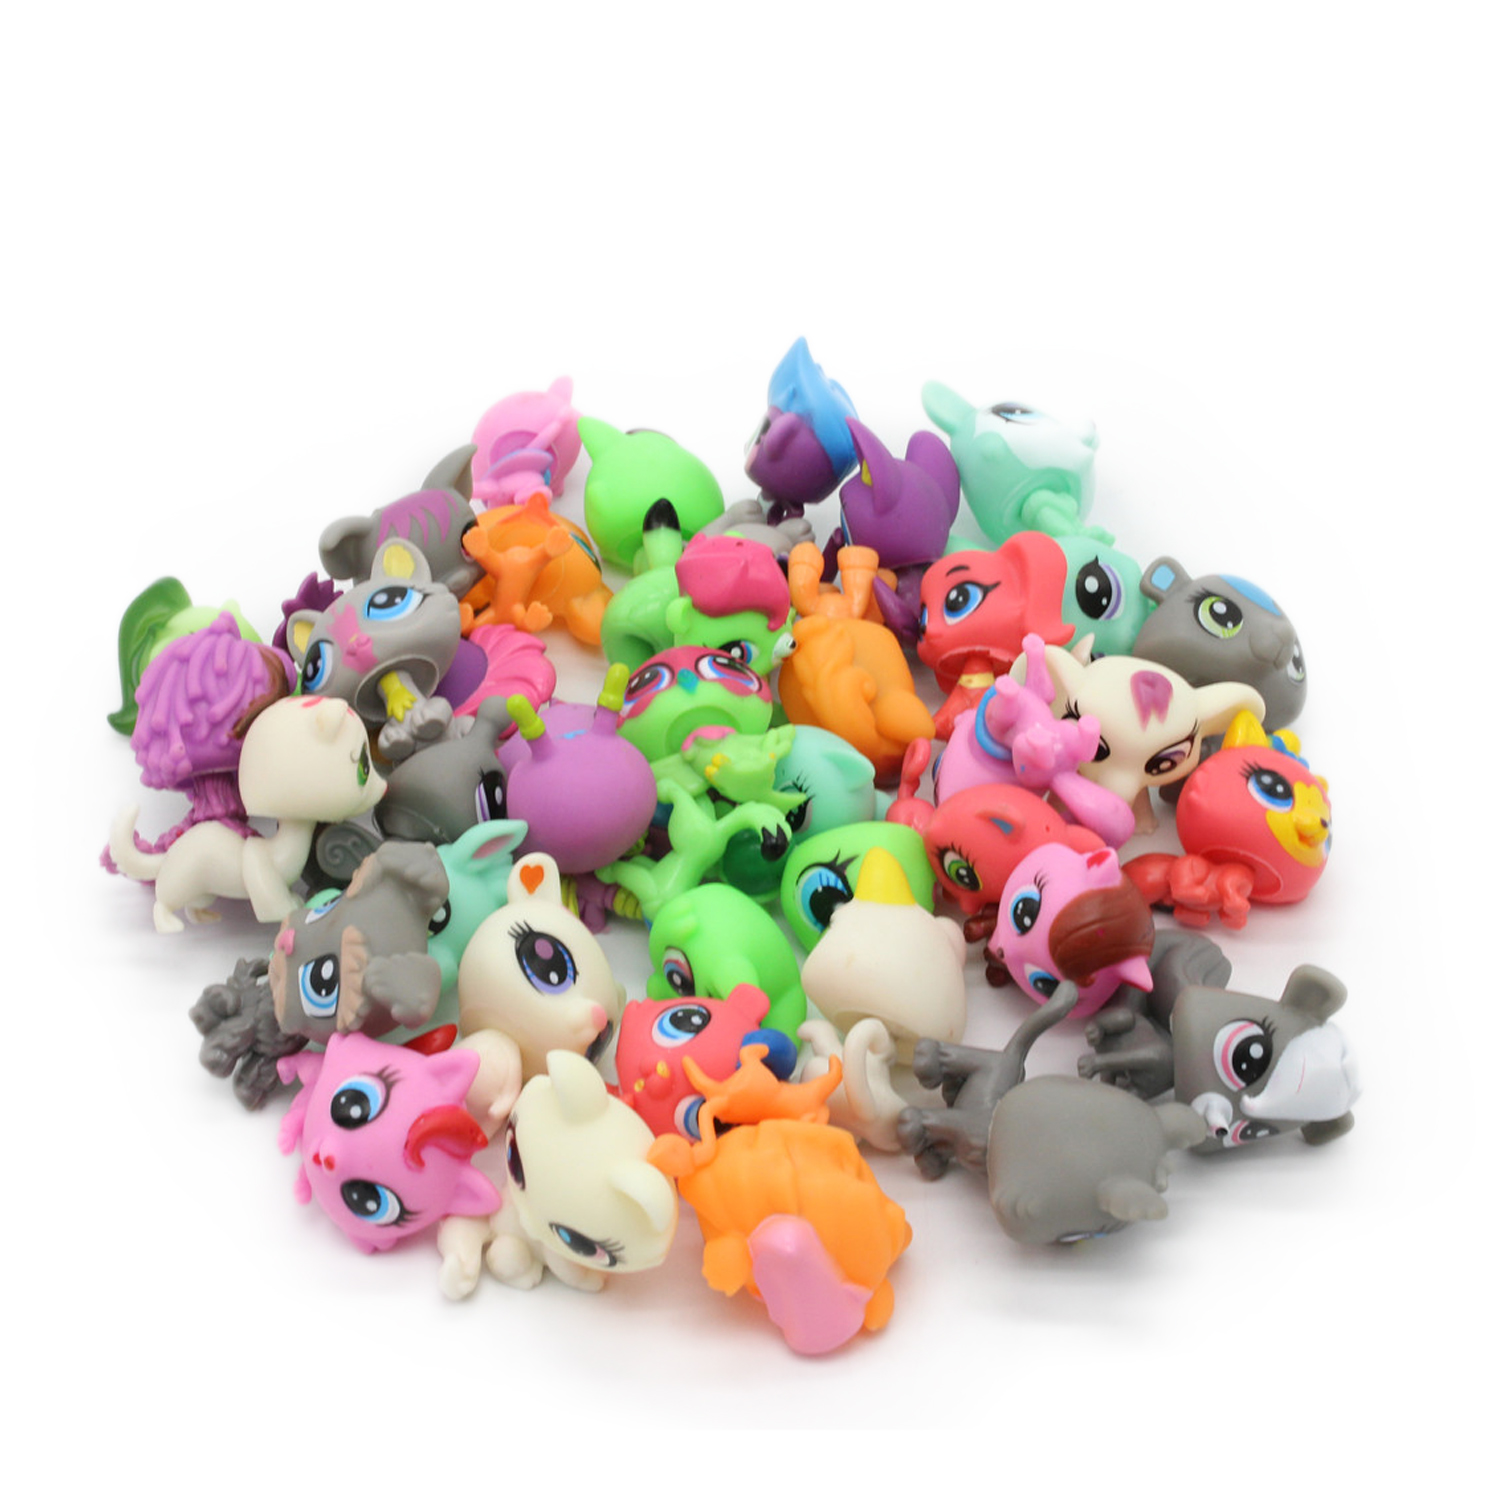 LPS New Style lps Toy bag 32Pcs/bag Little Pet Shop Mini Toy Animal Cat patrulla canina dog Action Figures Kids toys lps toy pet shop cute beach coconut trees and crabs action figure pvc lps toys for children birthday christmas gift